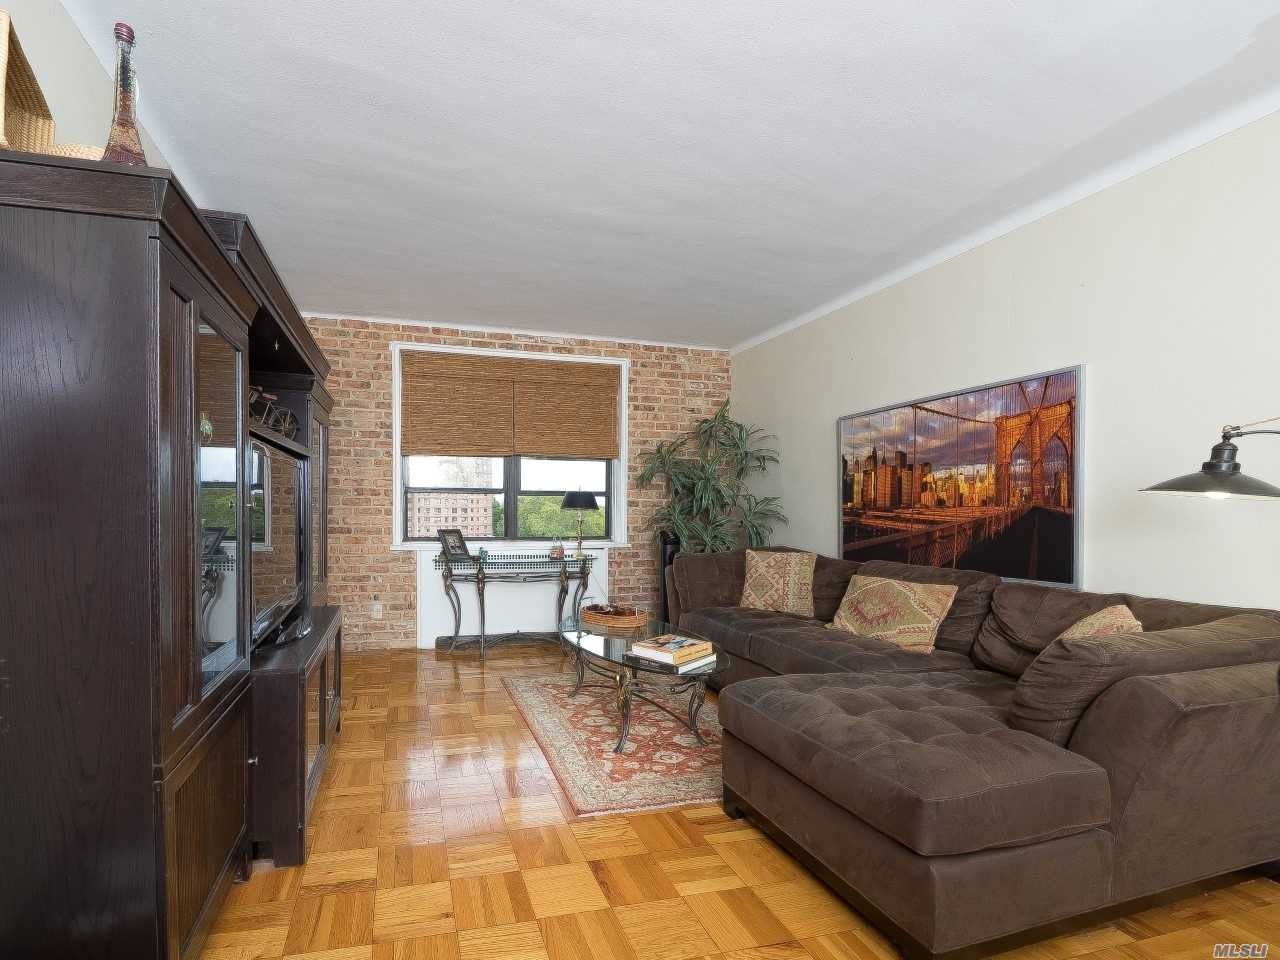 Beautiful 2Br (Junior) With Renovated Kitchen And Bath. Freshly And Professionally Painted, Solid Oak Floors Throughout. Top Floor Very Quiet Apartment In Pre-War Building Located Near All Subway, Shopping, Malls, Restaurants.